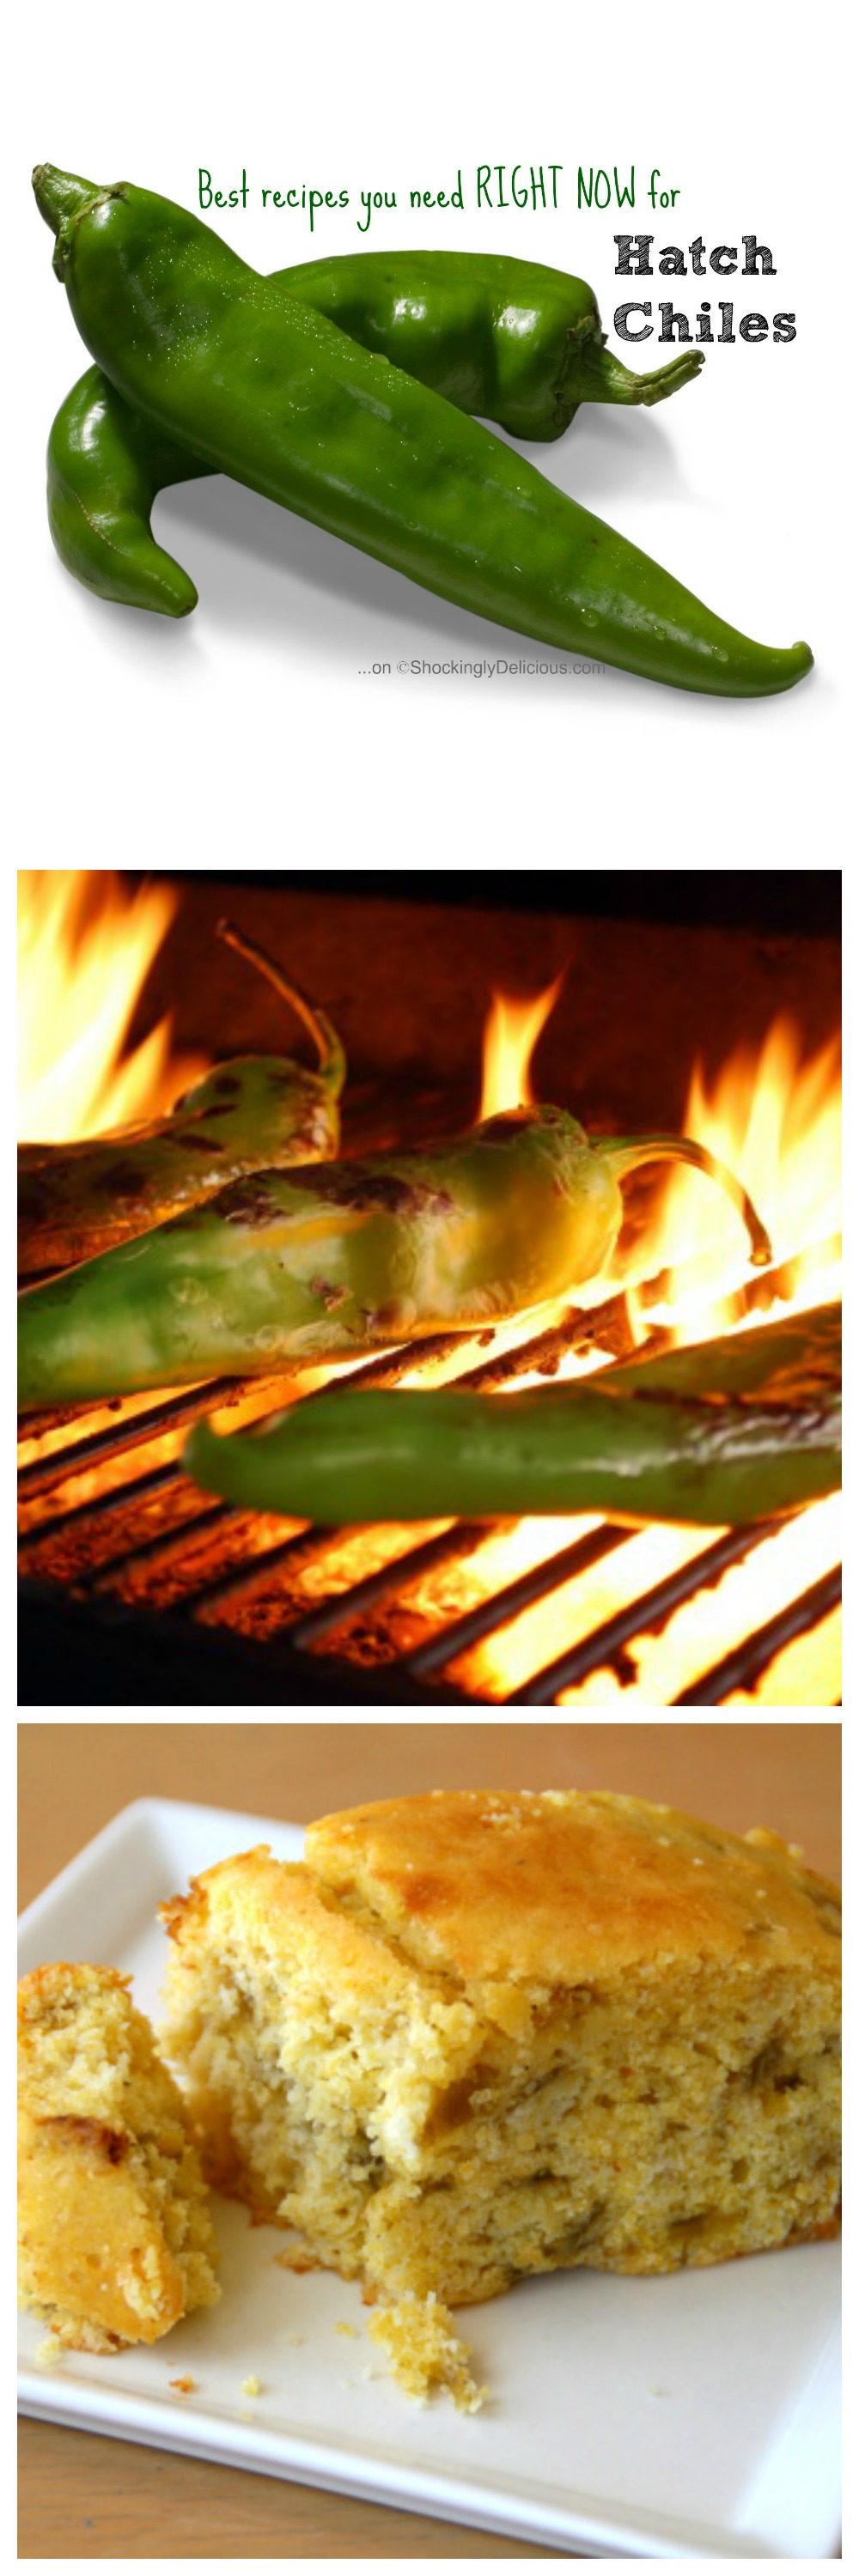 Best recipes you need right now for Hatch Chiles